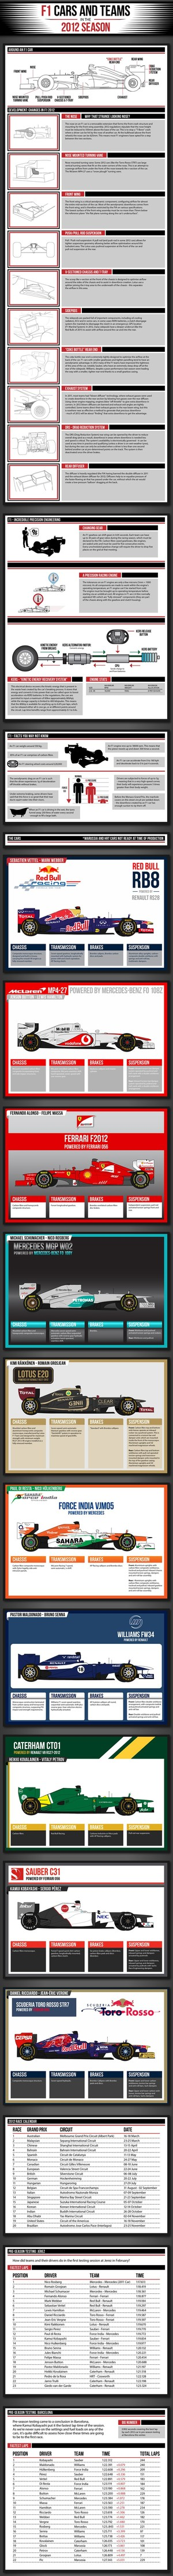 F1 2012: All you need to know (infographics)